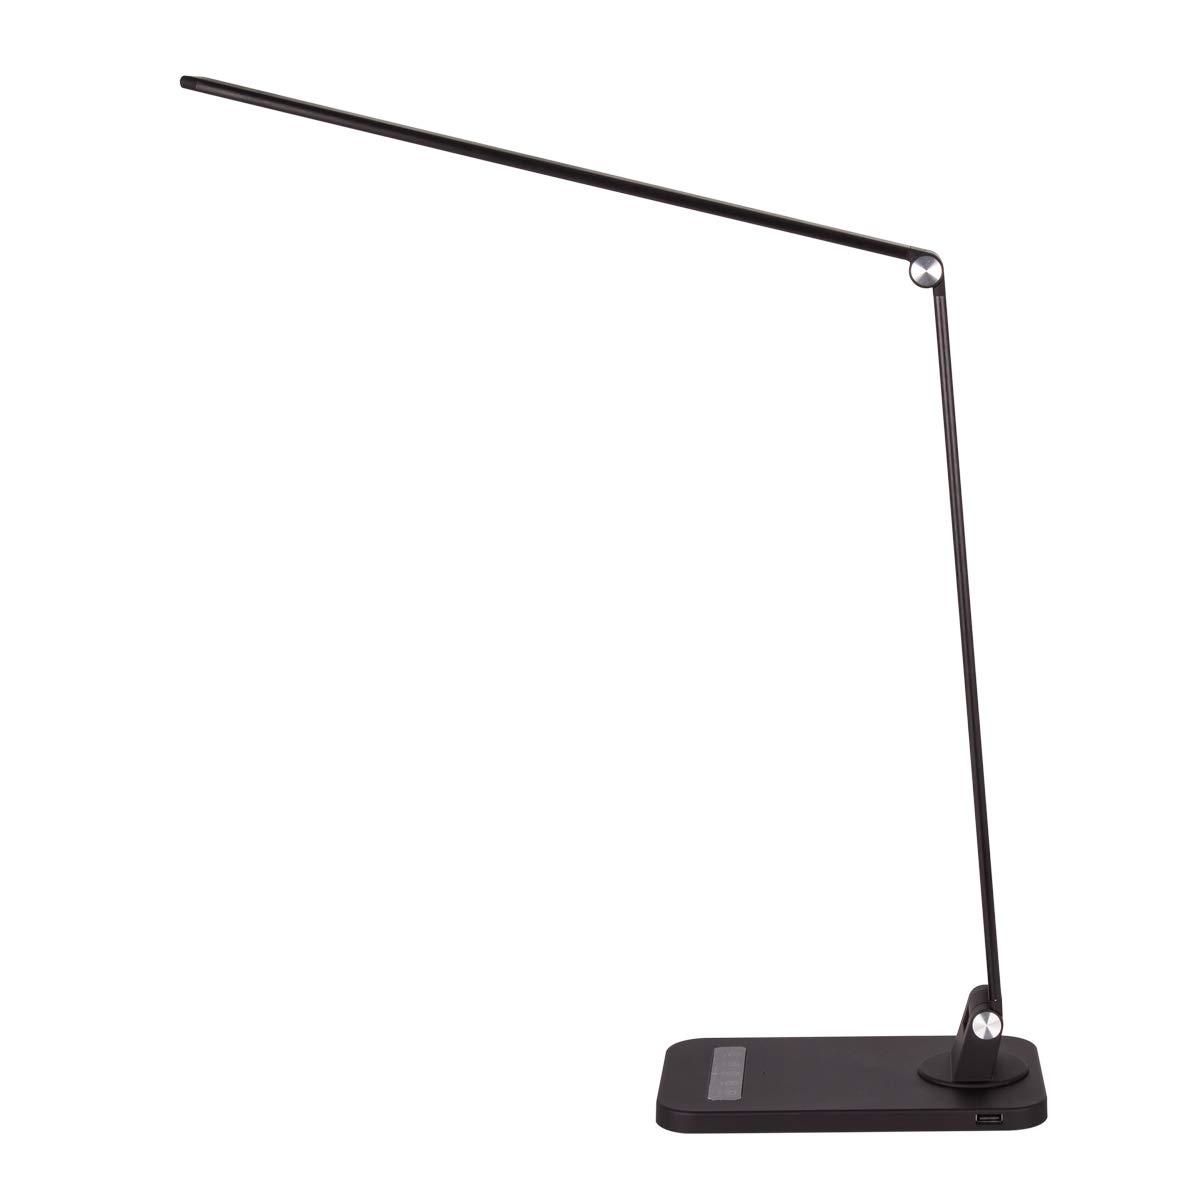 JJC Lighting 12W LED Desk Lamp with USB Charging Port, 4 Lighting Modes with 5 Brightness Levels, 0.5h/1h Timer, Touch Control, Memory Function,USB Port, Black by JJC